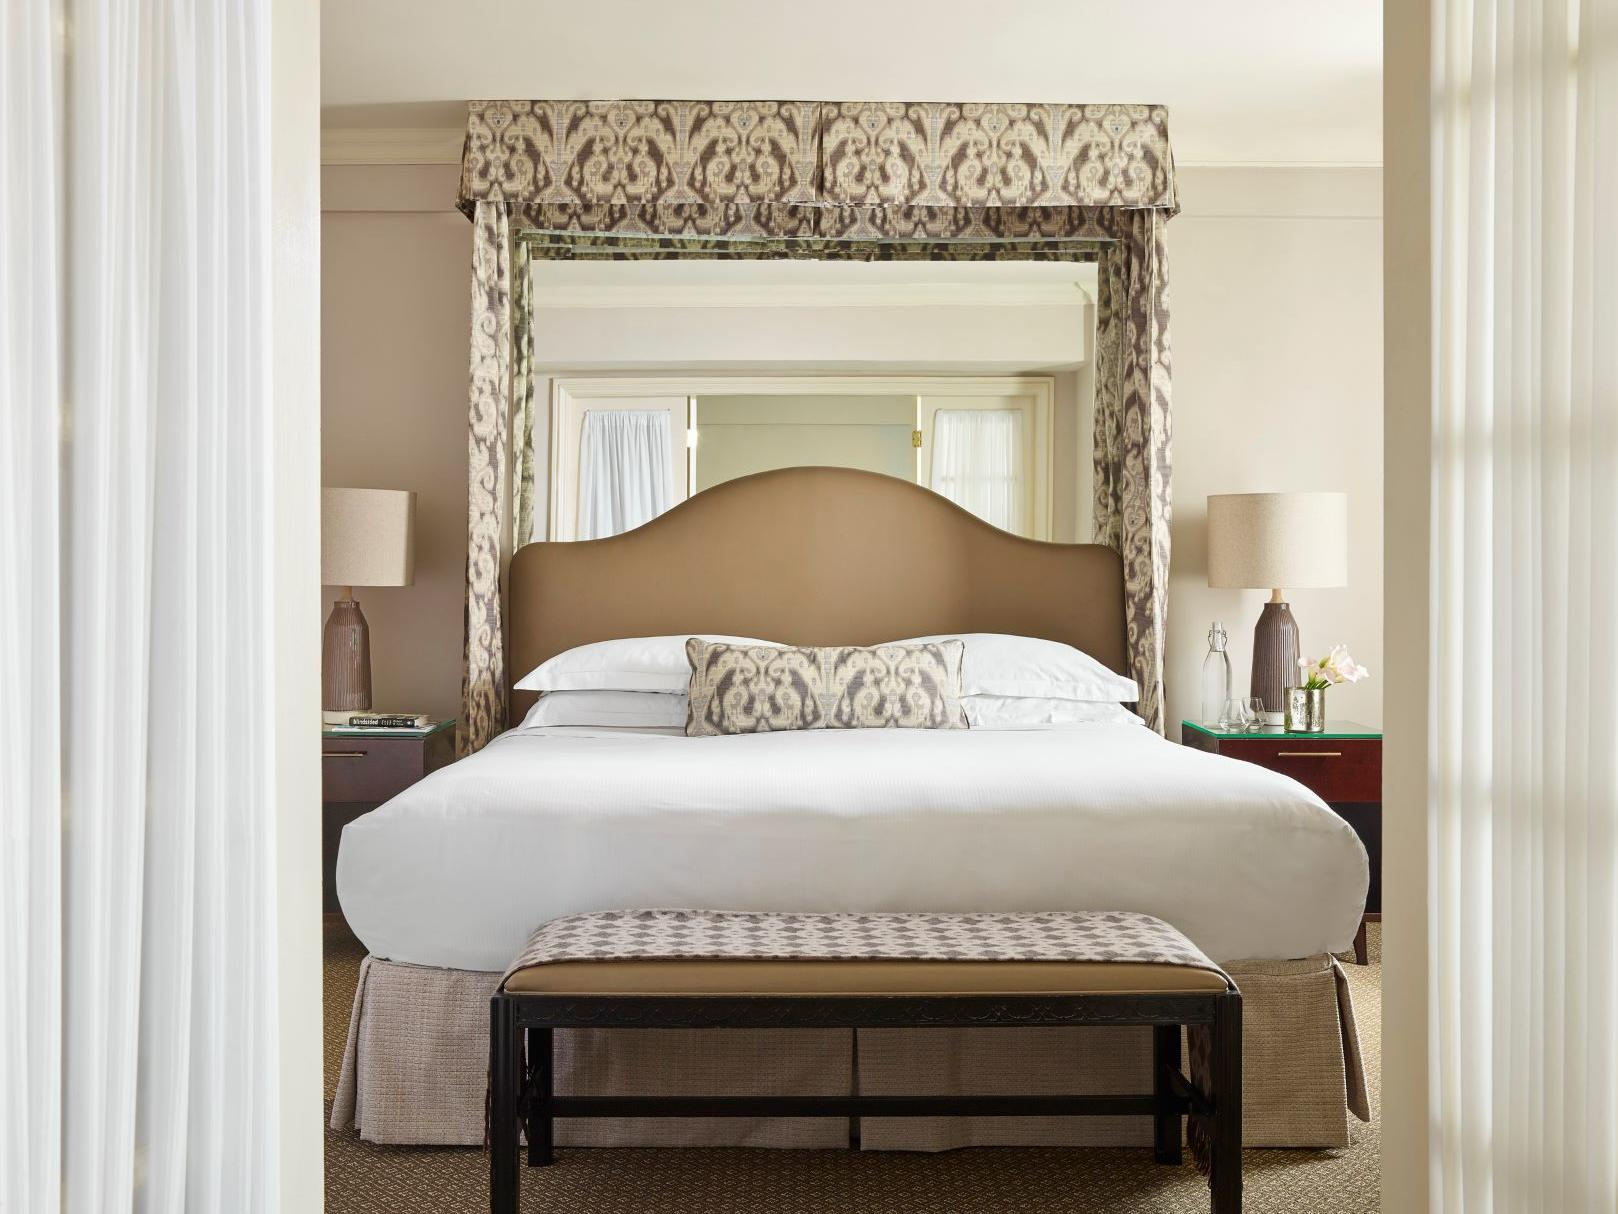 large bed with mirror on wall above and two side tables